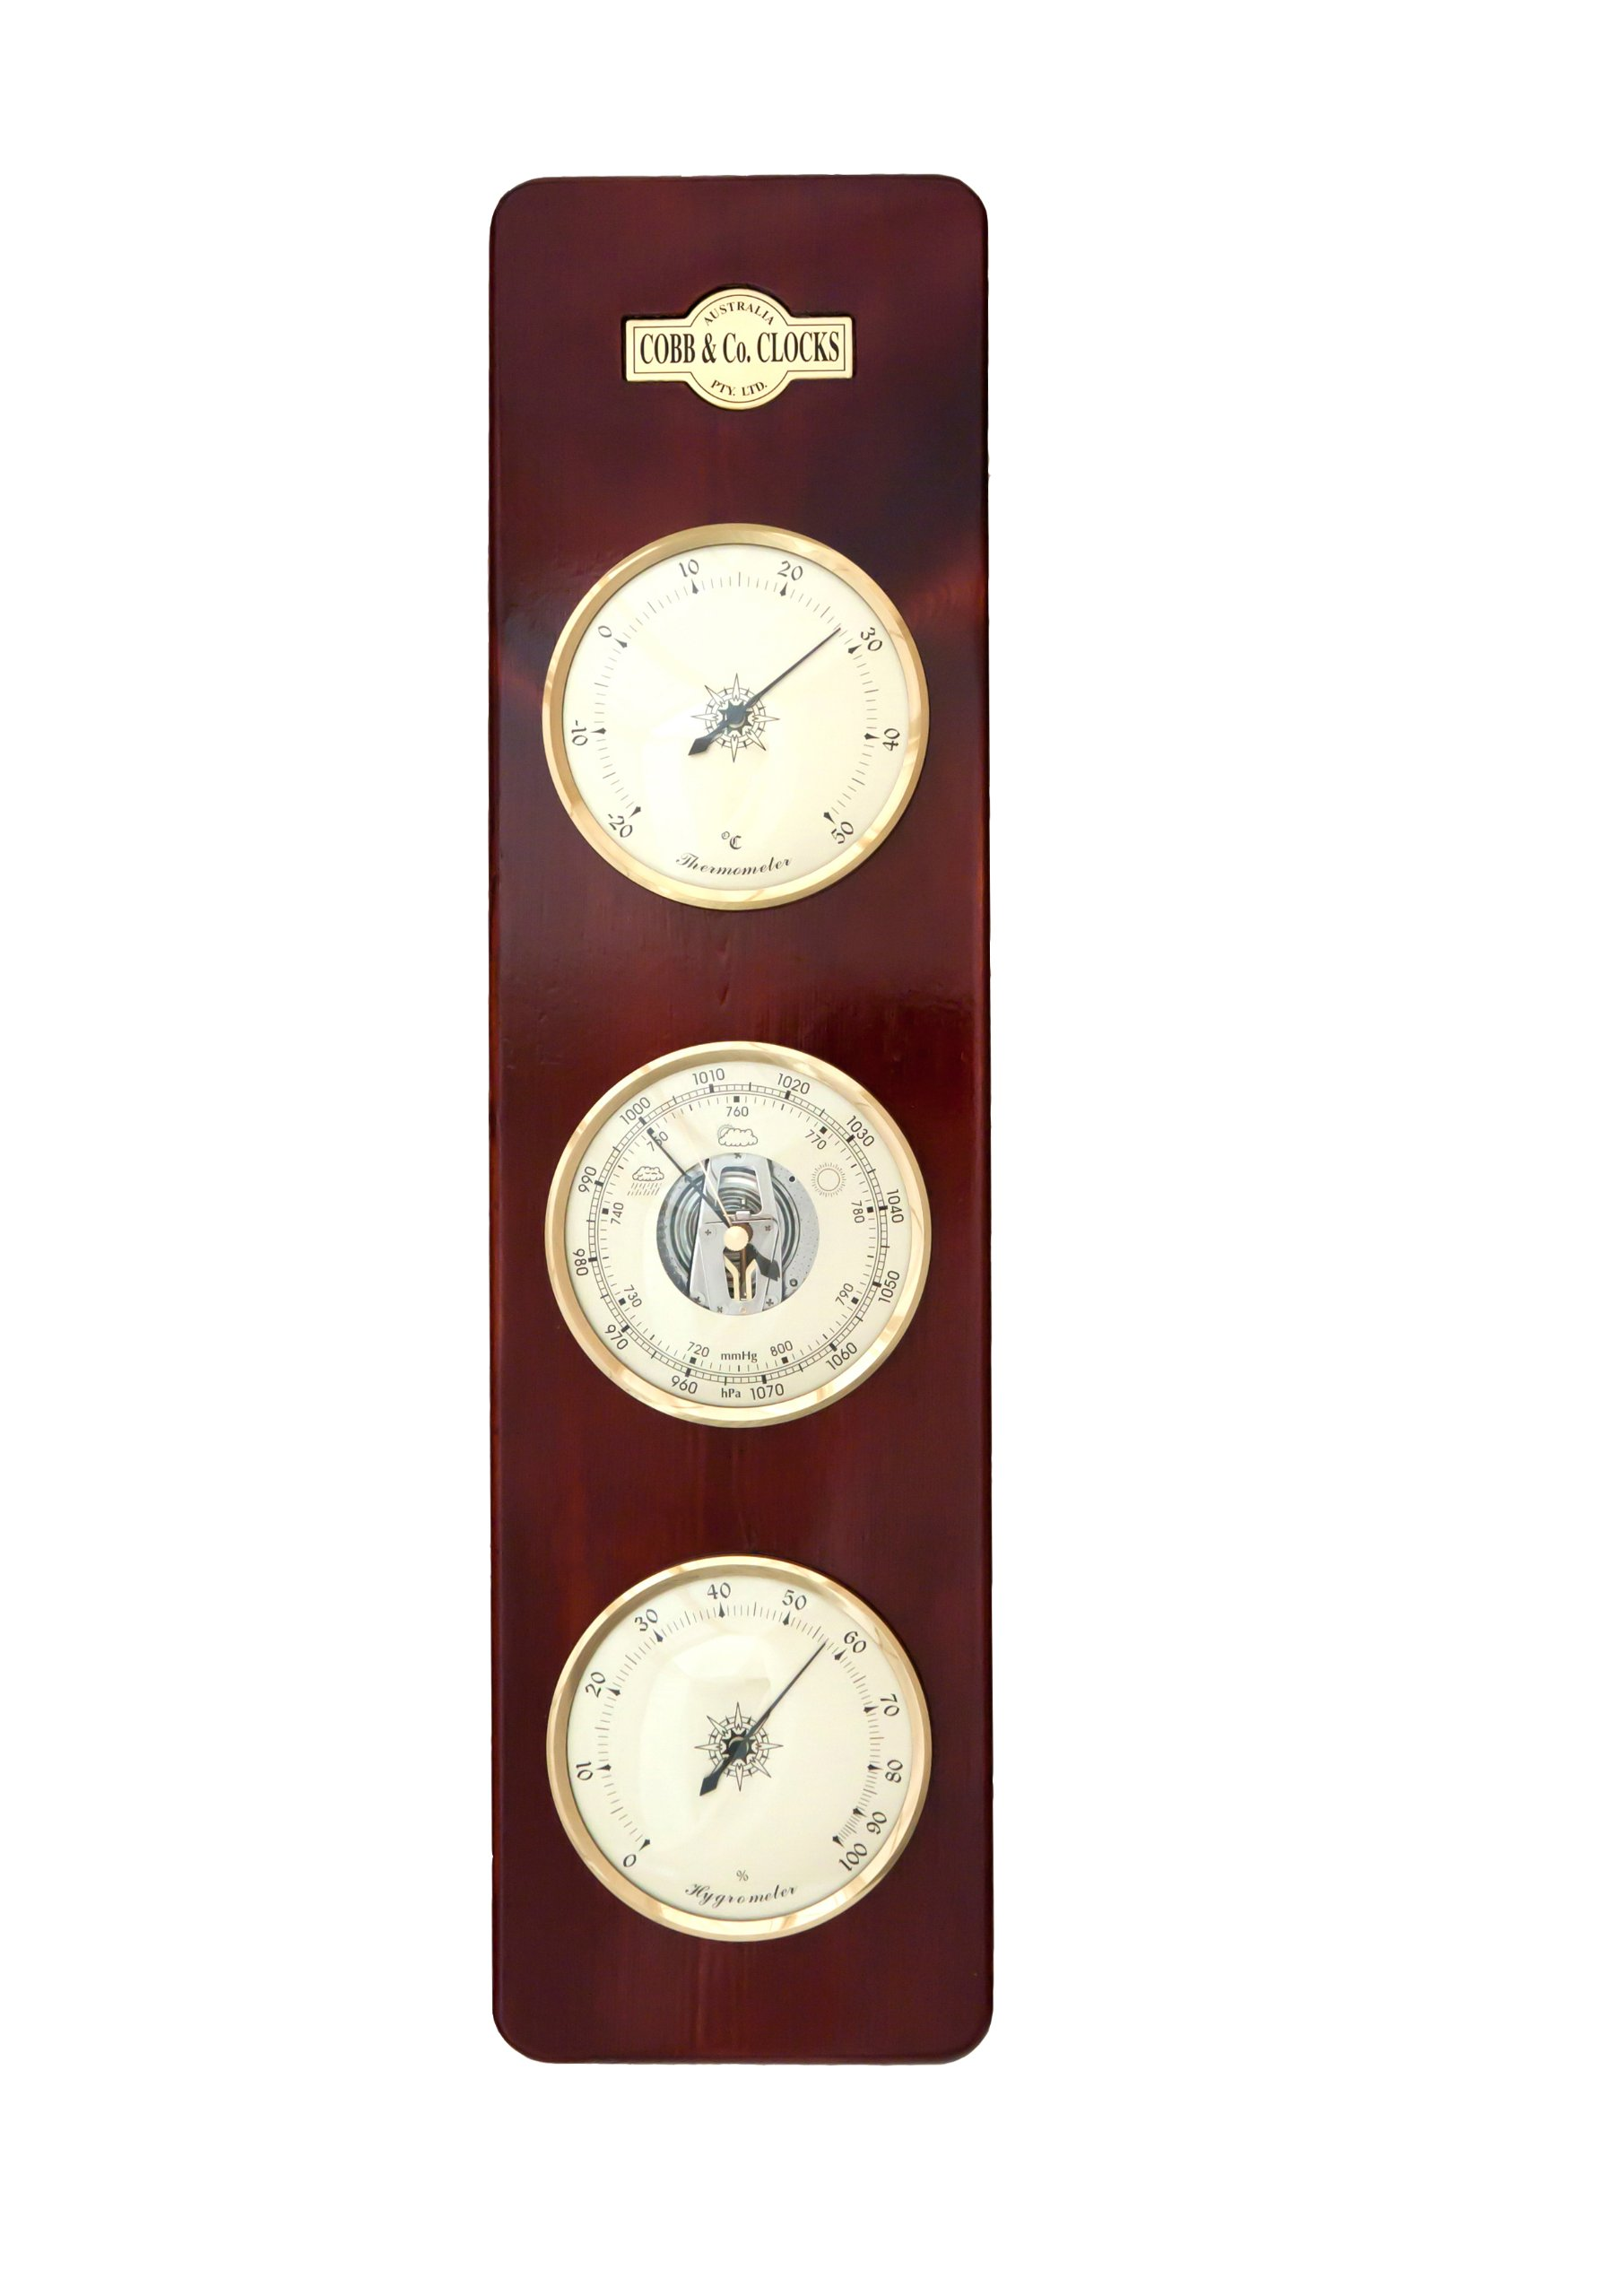 COBB & Co. Large 3 in 1 Barometer, Mahogany by COBB & Co. Clocks